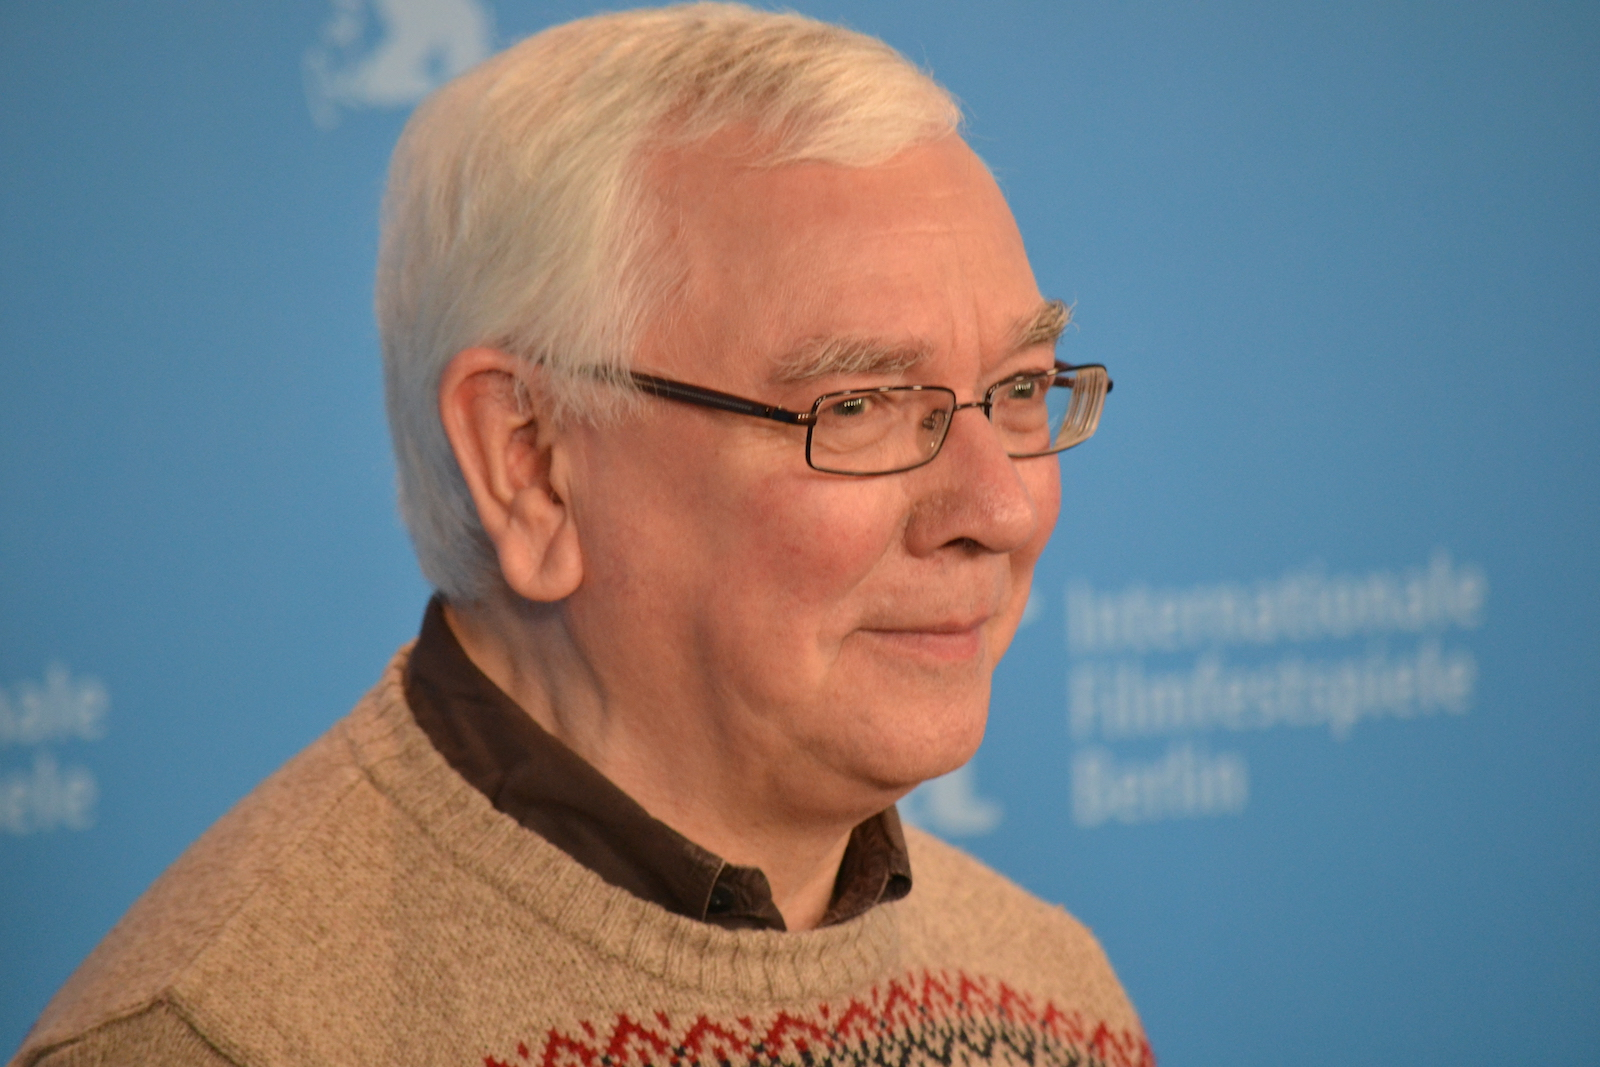 Berlino 2016: Terence Davies in uno scatto al photocall di A Quiet Passion